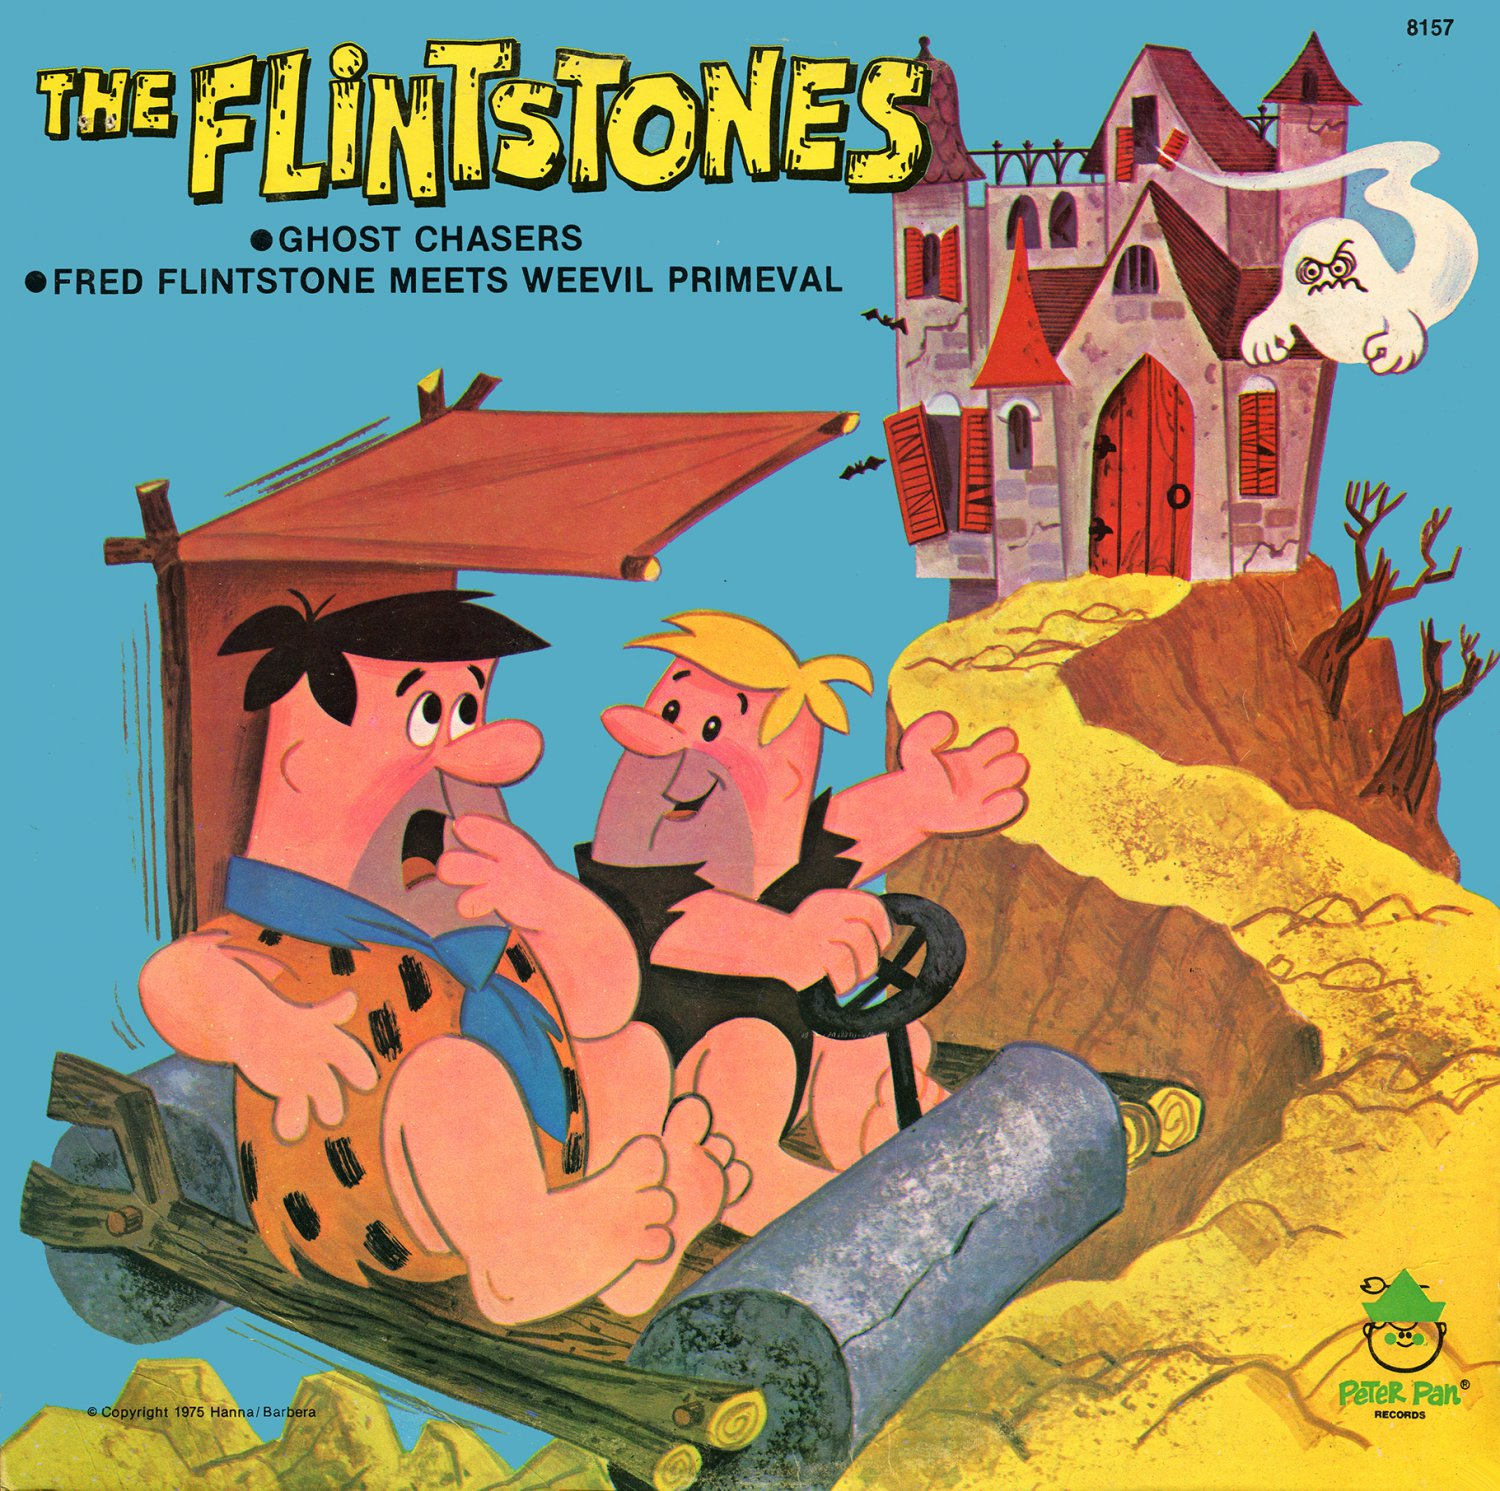 The Flintstones - Ghost Chasers/Fred Flintstone Meets Weevil Primeval, Story Collection LP/CD